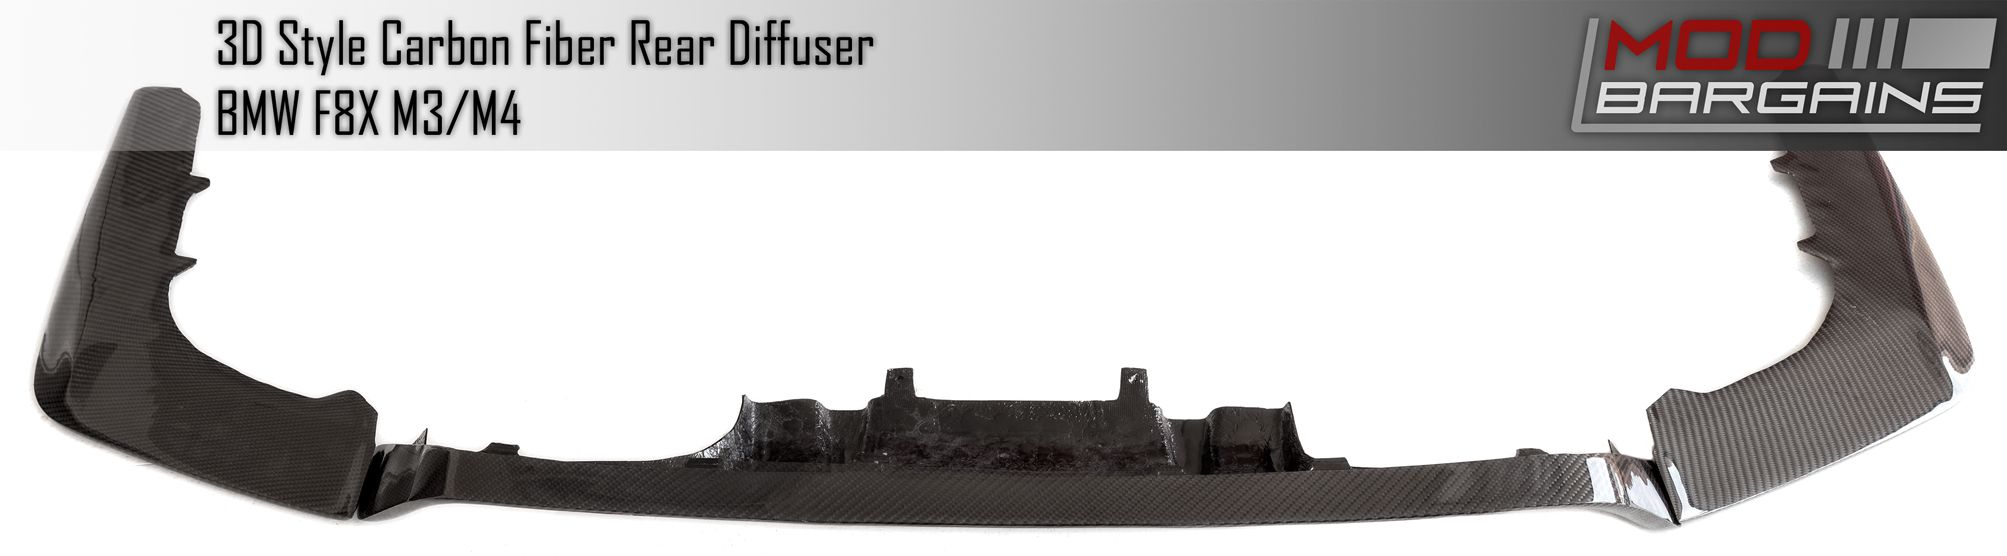 Carbon Fiber 3D Diffuser for 2015+ BMW M3 & M4  [F80/F82] (BMDI8X05)